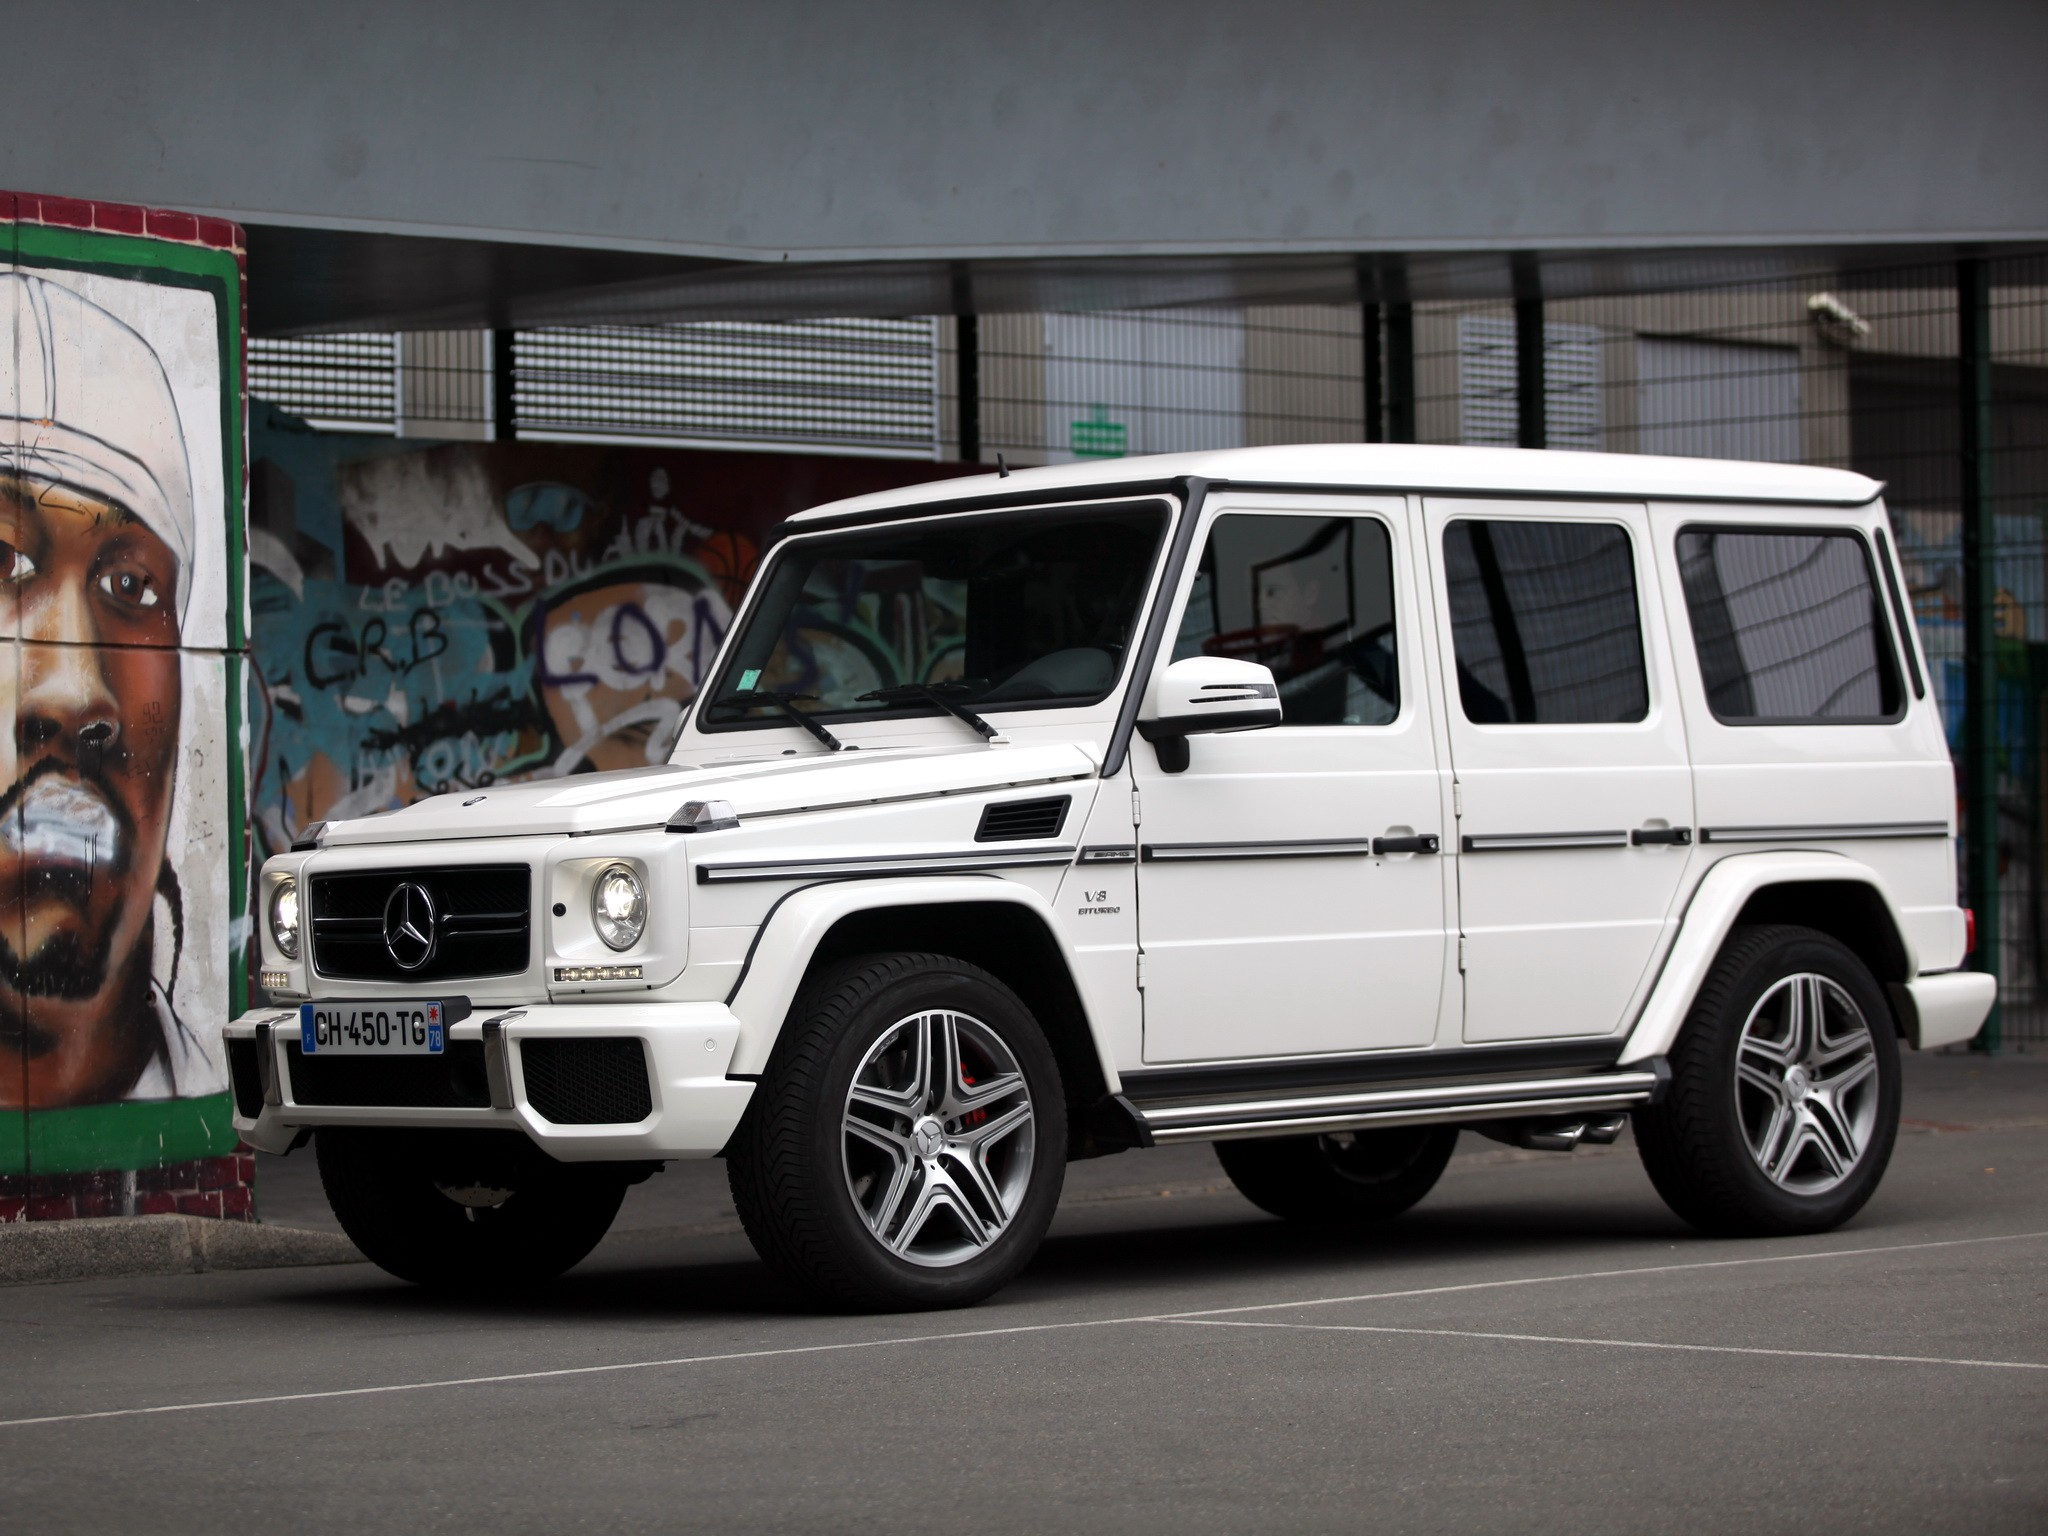 mercedes benz g 63 amg w463 specs 2012 2013 2014 2015 2016 2017 2018 autoevolution. Black Bedroom Furniture Sets. Home Design Ideas